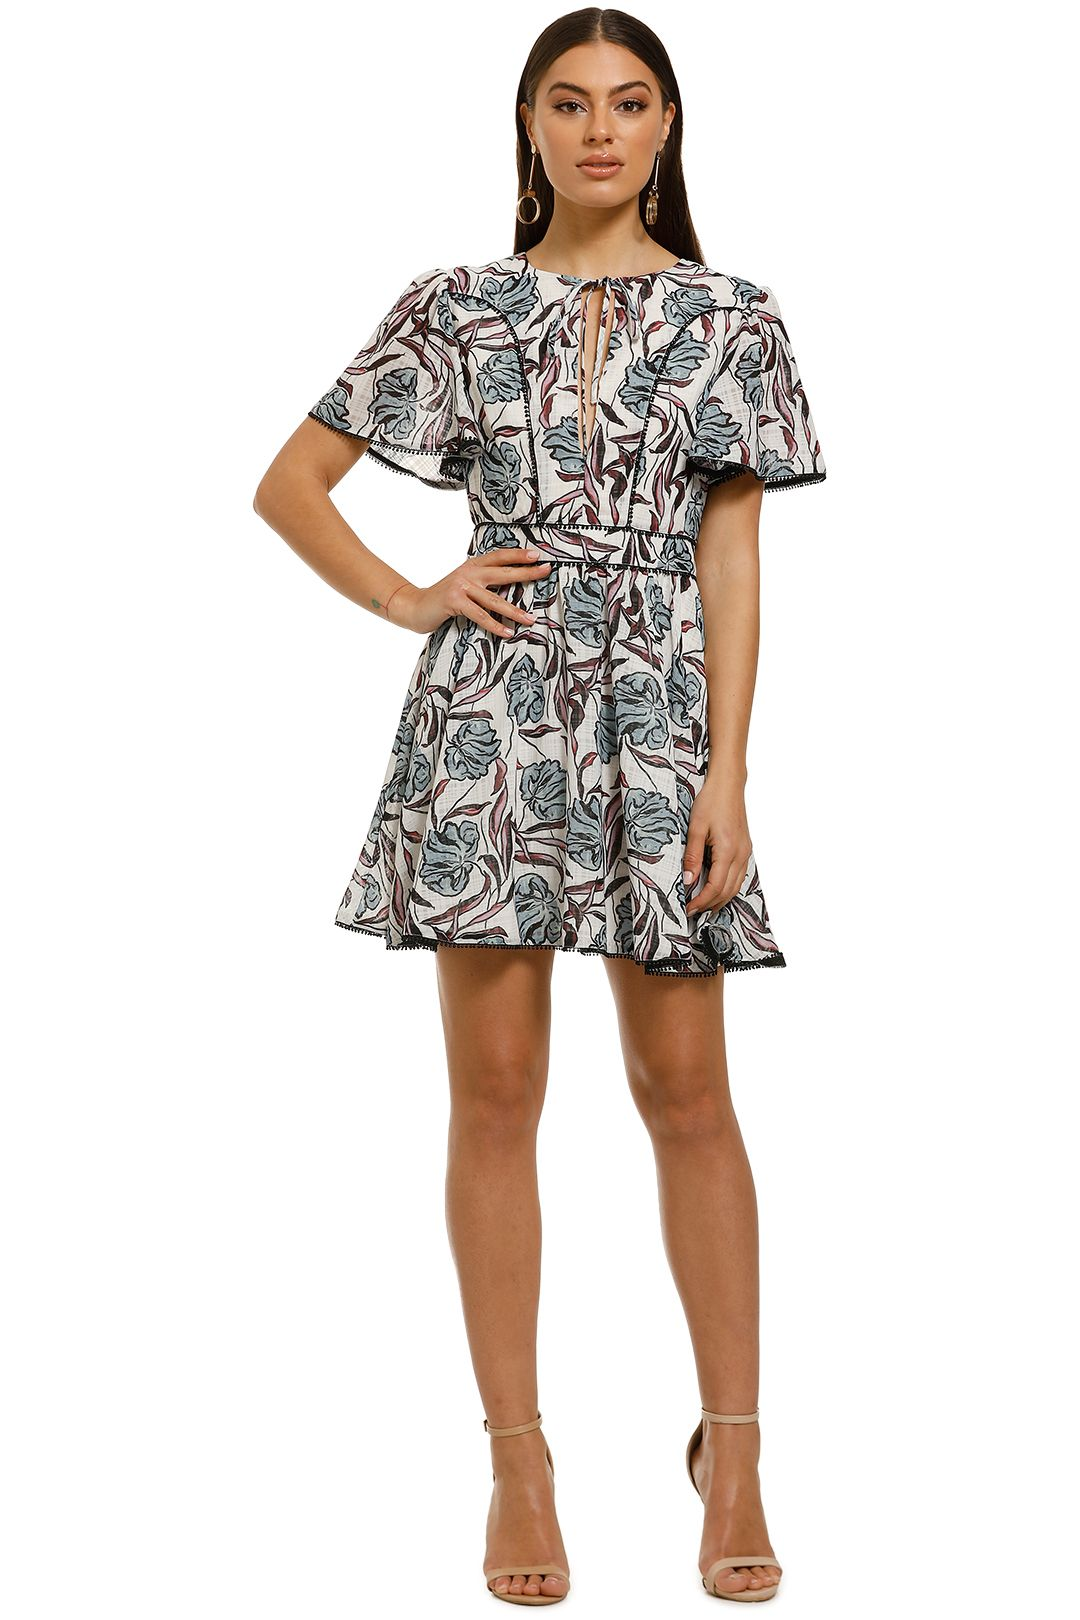 Stevie-May-Sweet-Sister-Mini-Dress-Sister-Ray-Print-Front